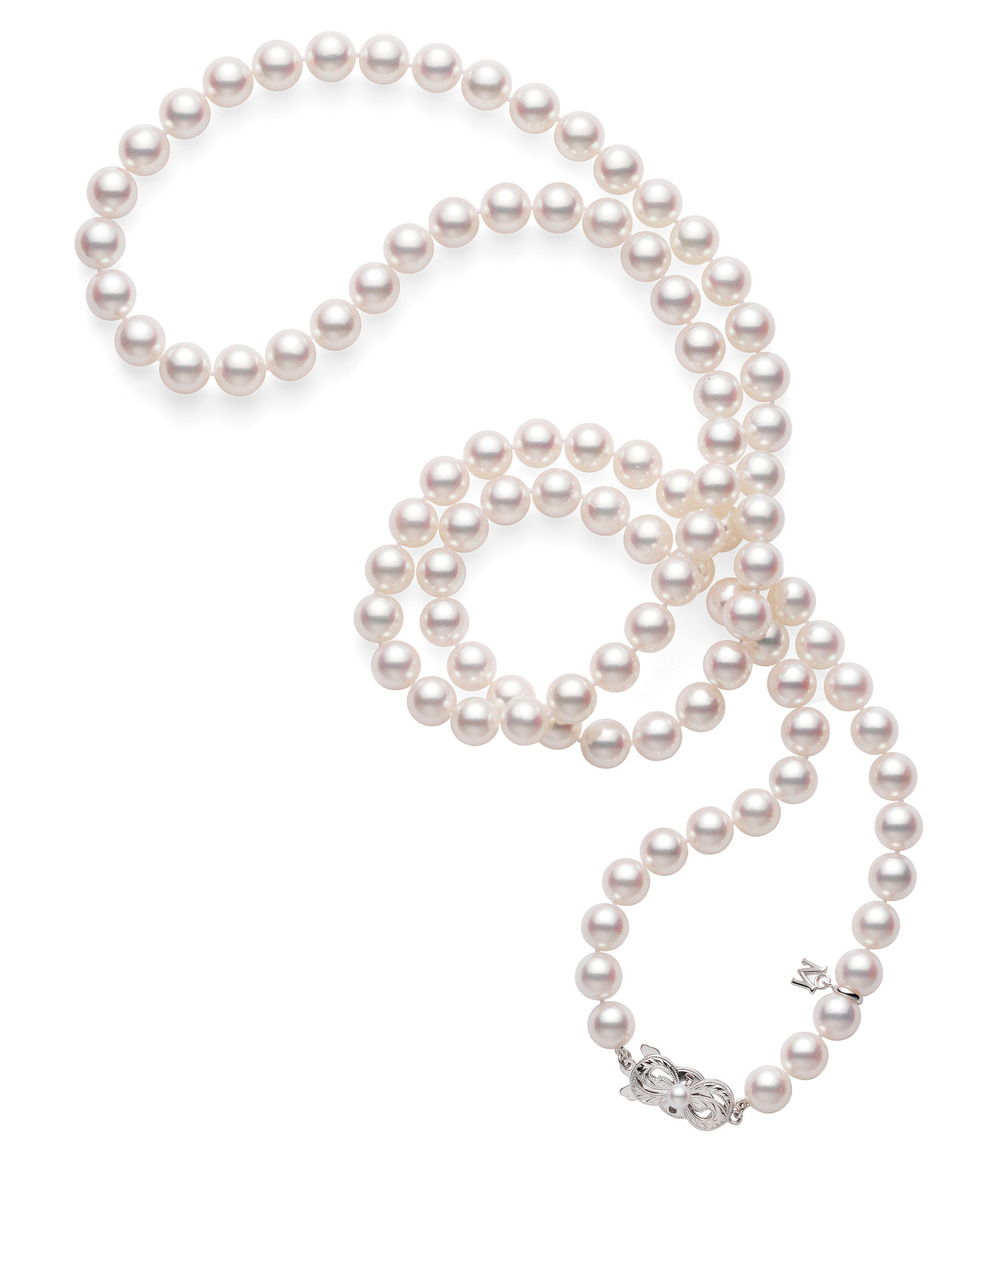 Mikimoto Akoya Cultured Pearl Opera Length Necklace